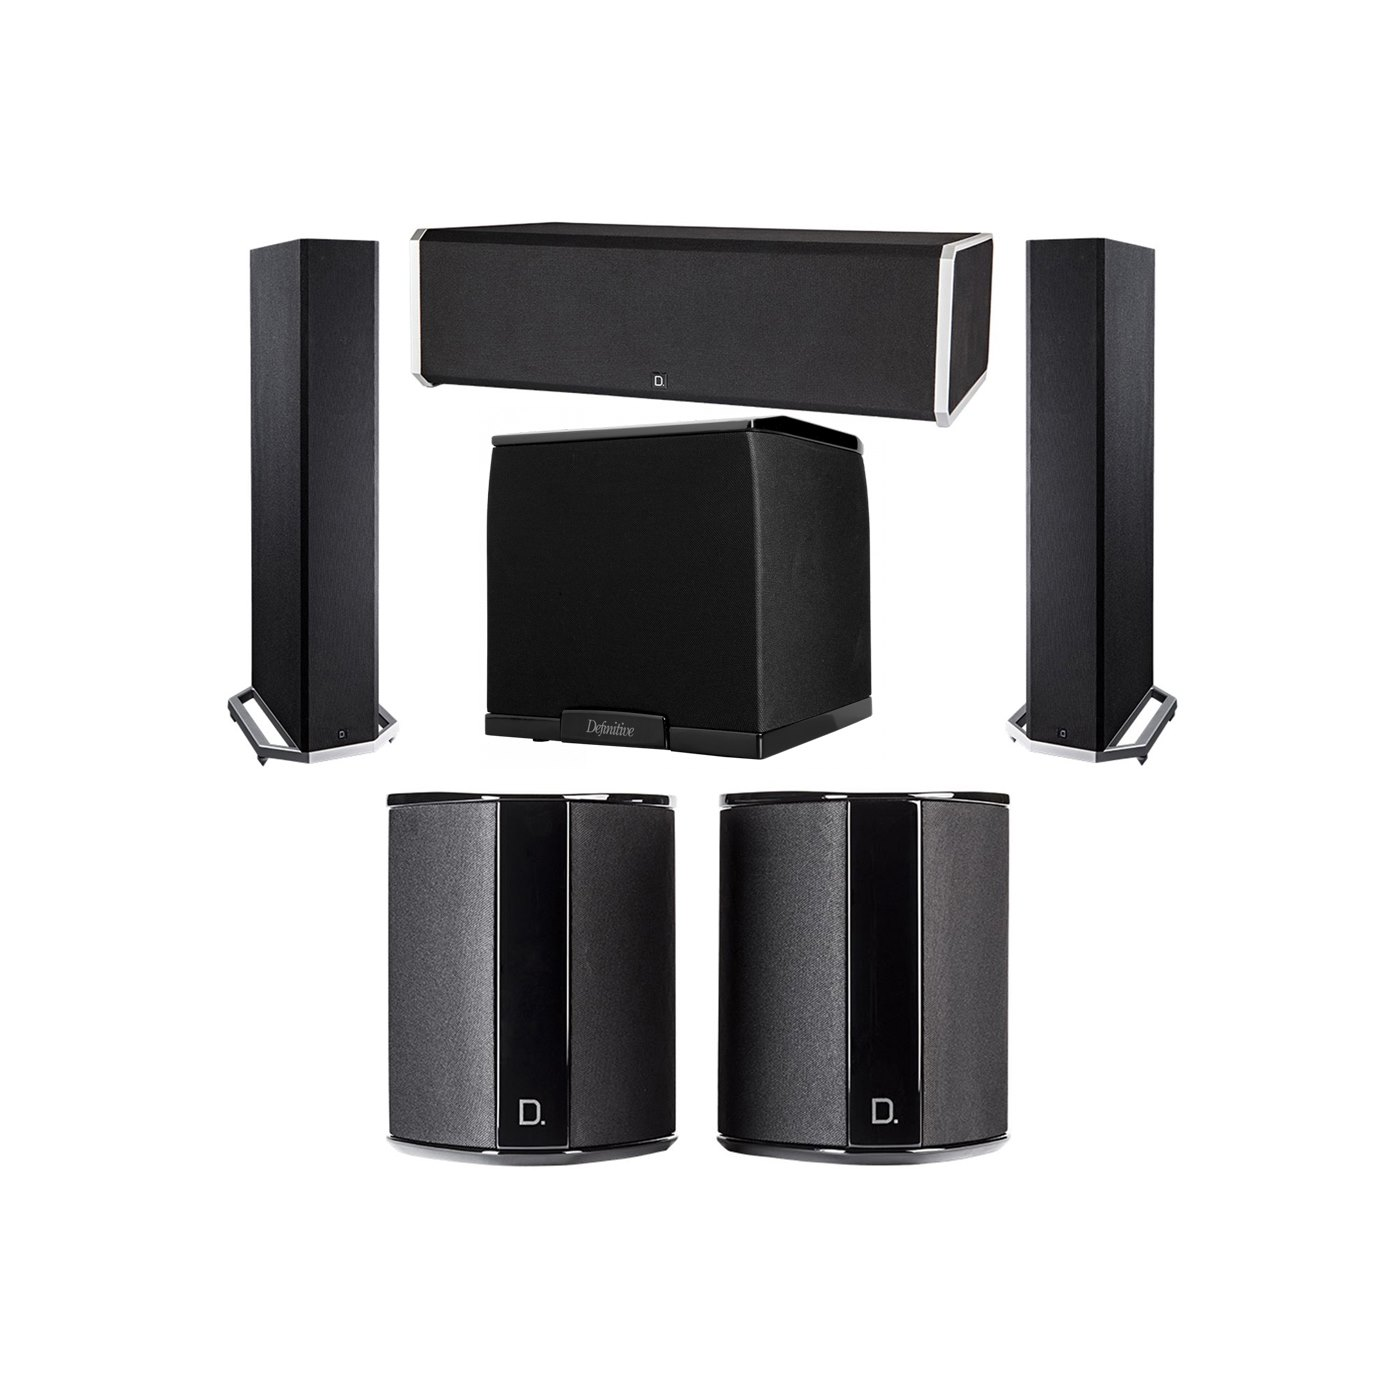 Definitive Technology 5.1 System with 2 BP9020 Tower Speakers, 1 CS9080 Center Channel Speaker, 2 SR9040 Surround Speaker, 1 Definitive Technology SuperCube 2000 Powered Subwoofer